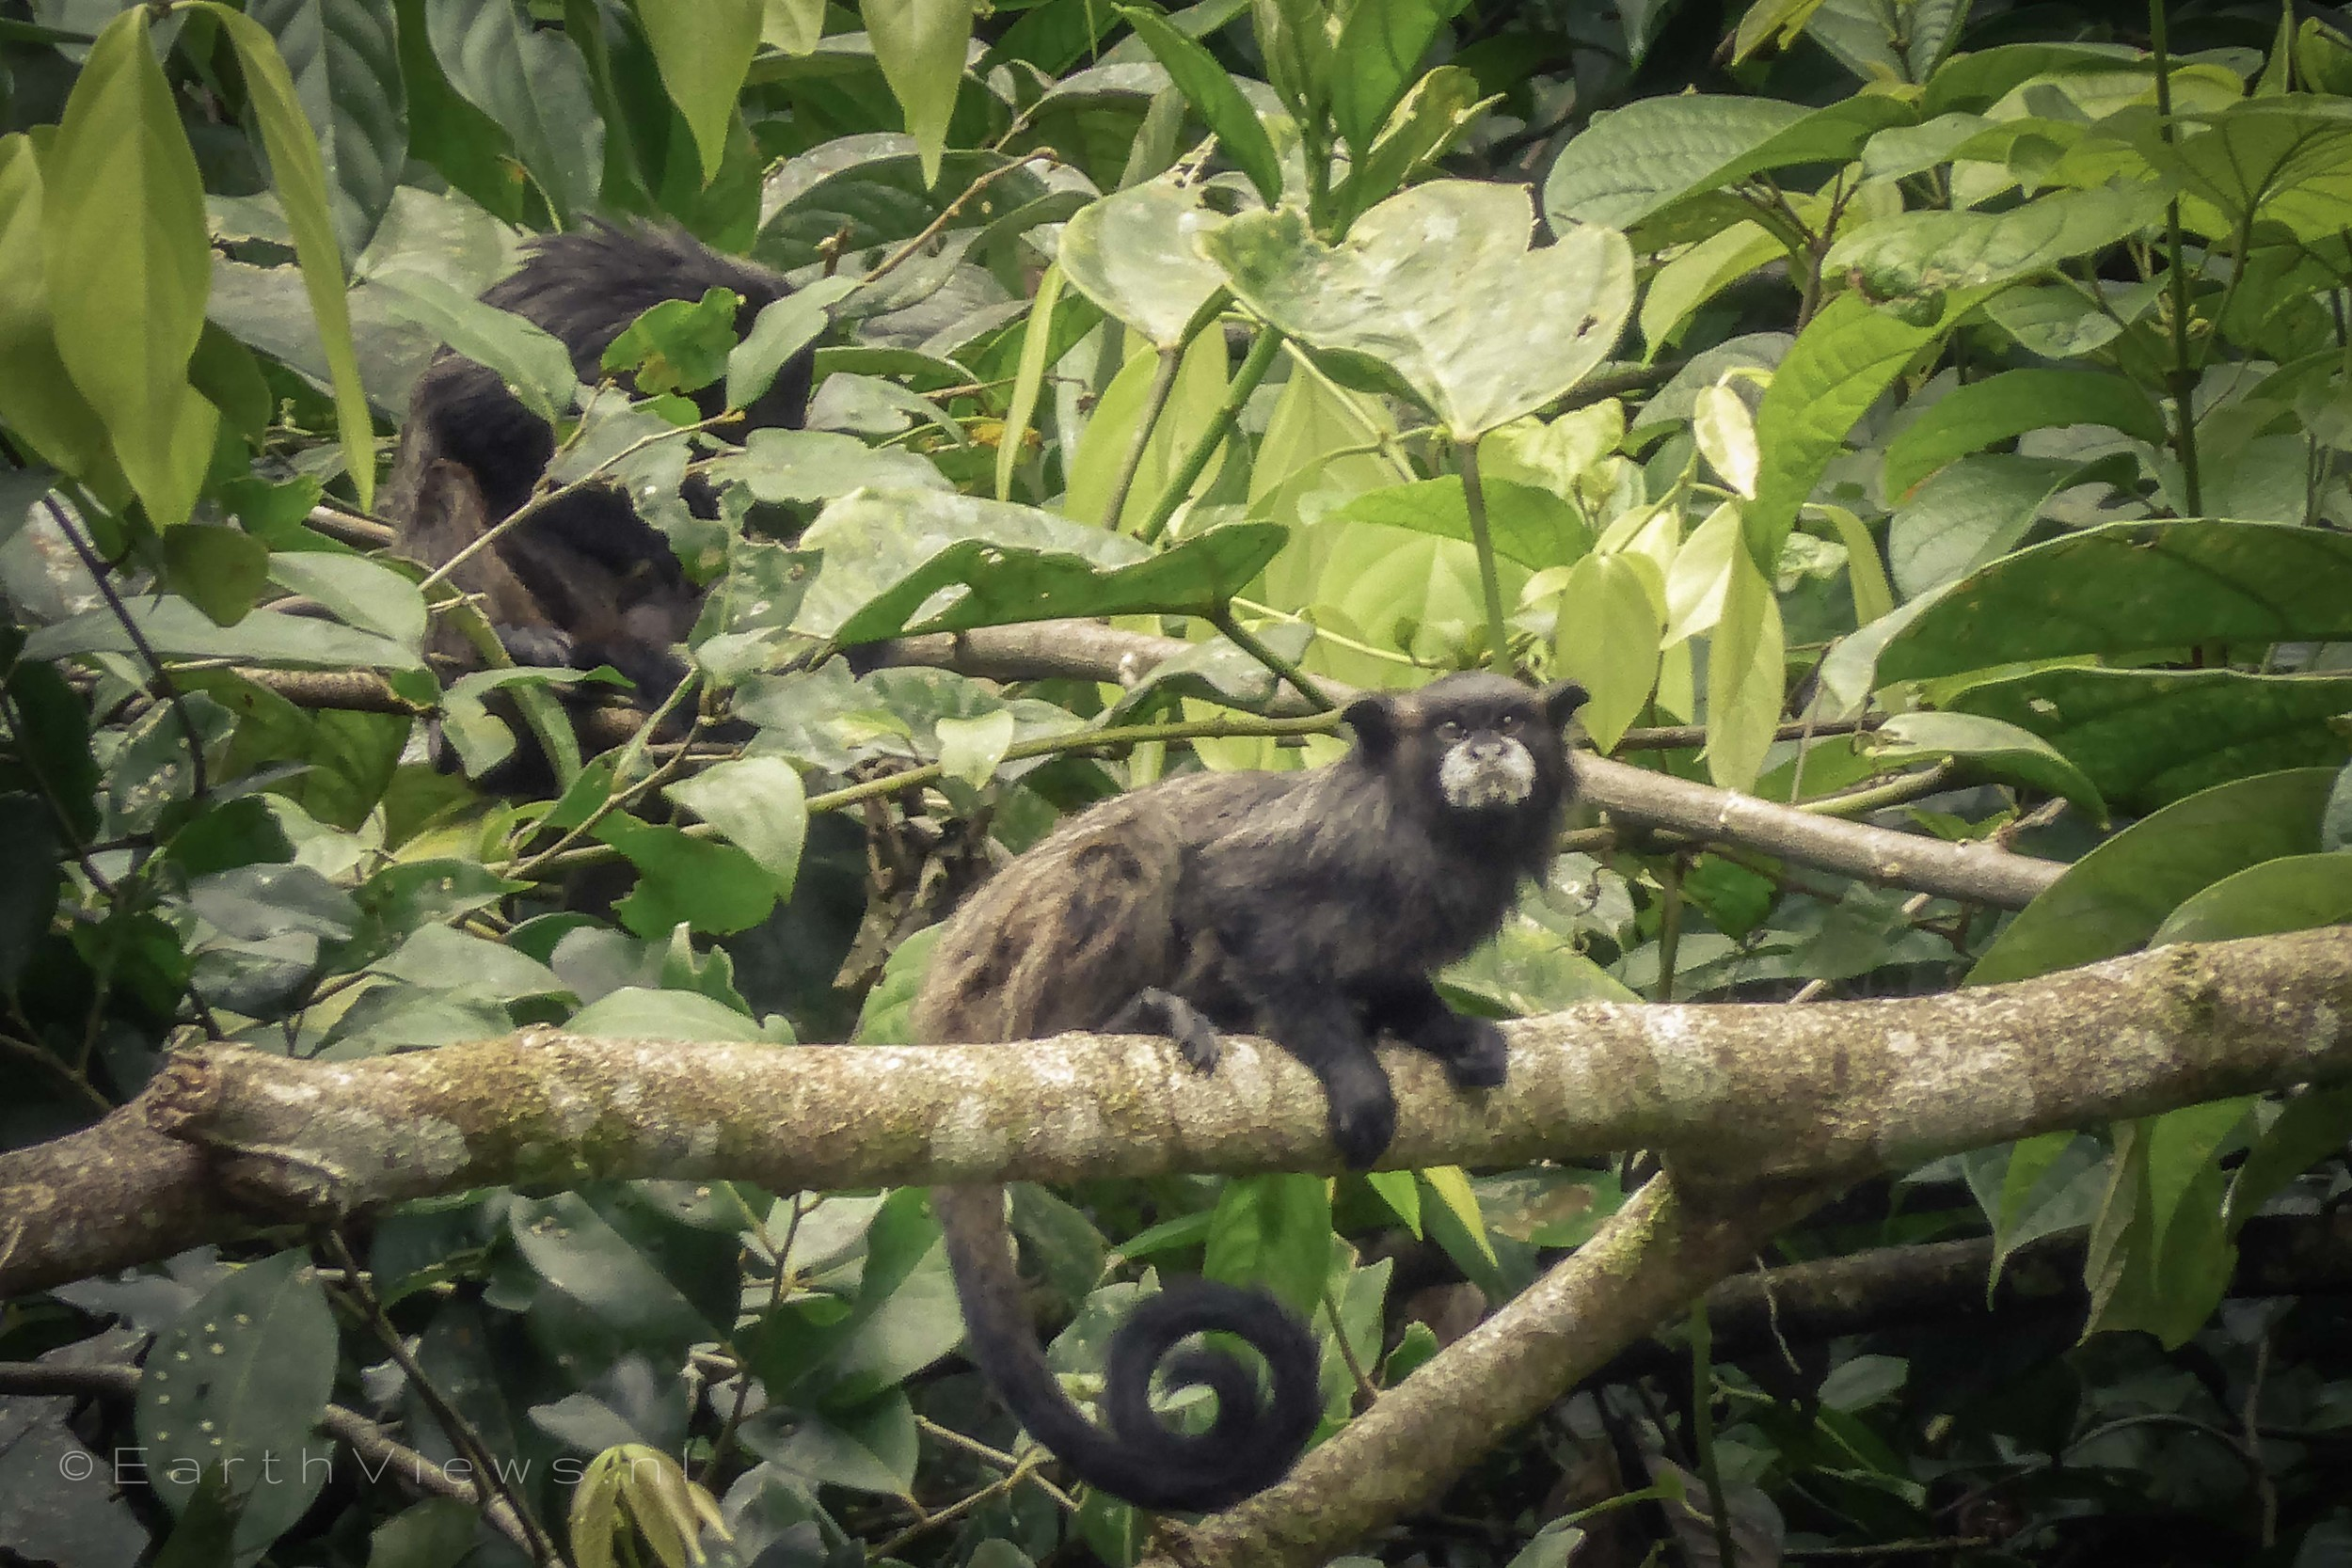 Final surprise. An animal we did not see earlier: the tamarin monkey.